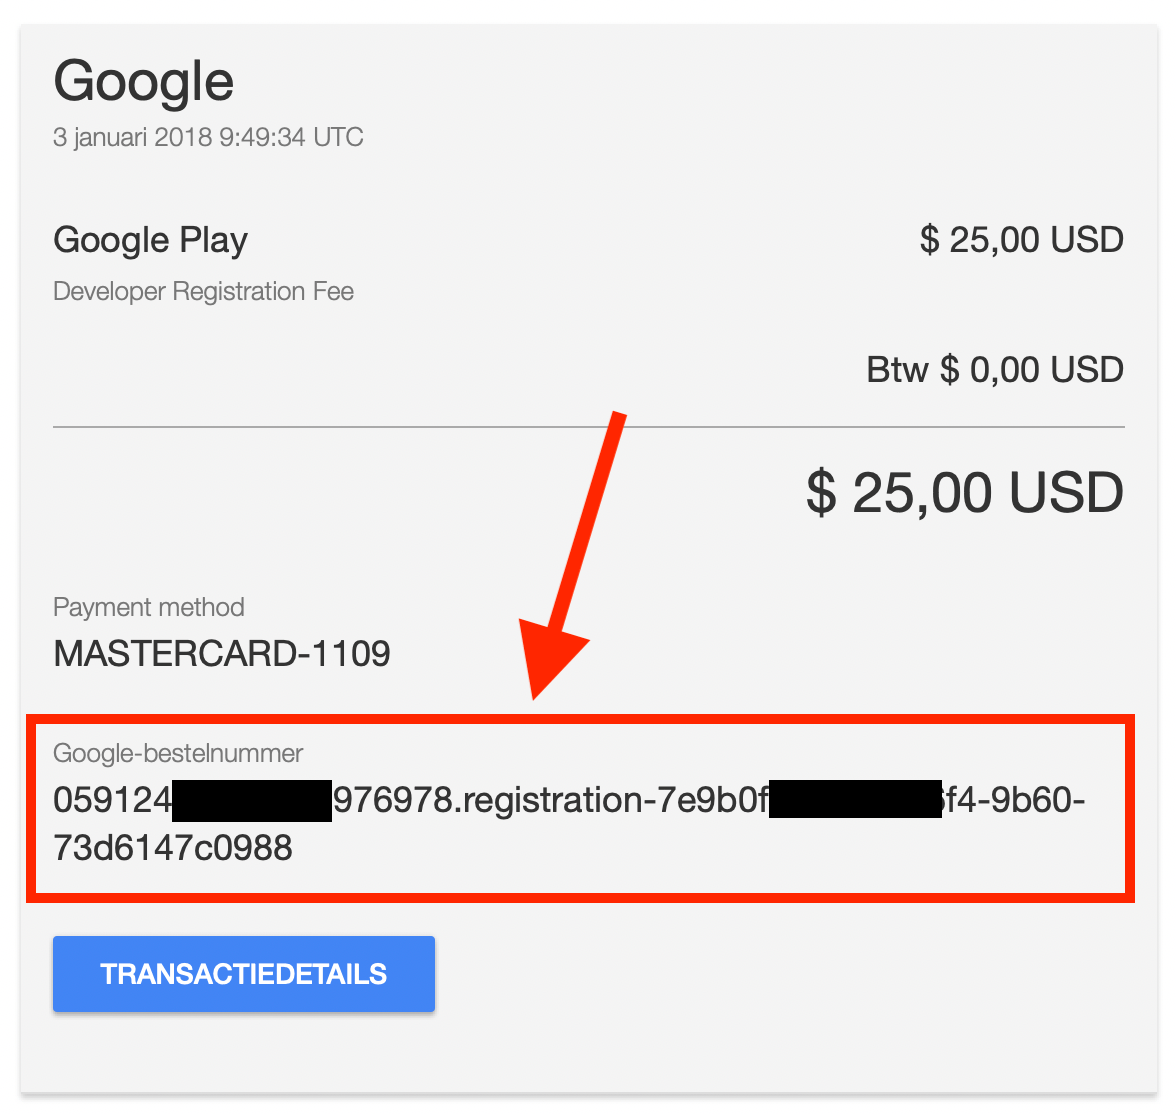 the transaction ID does not match for this developer account